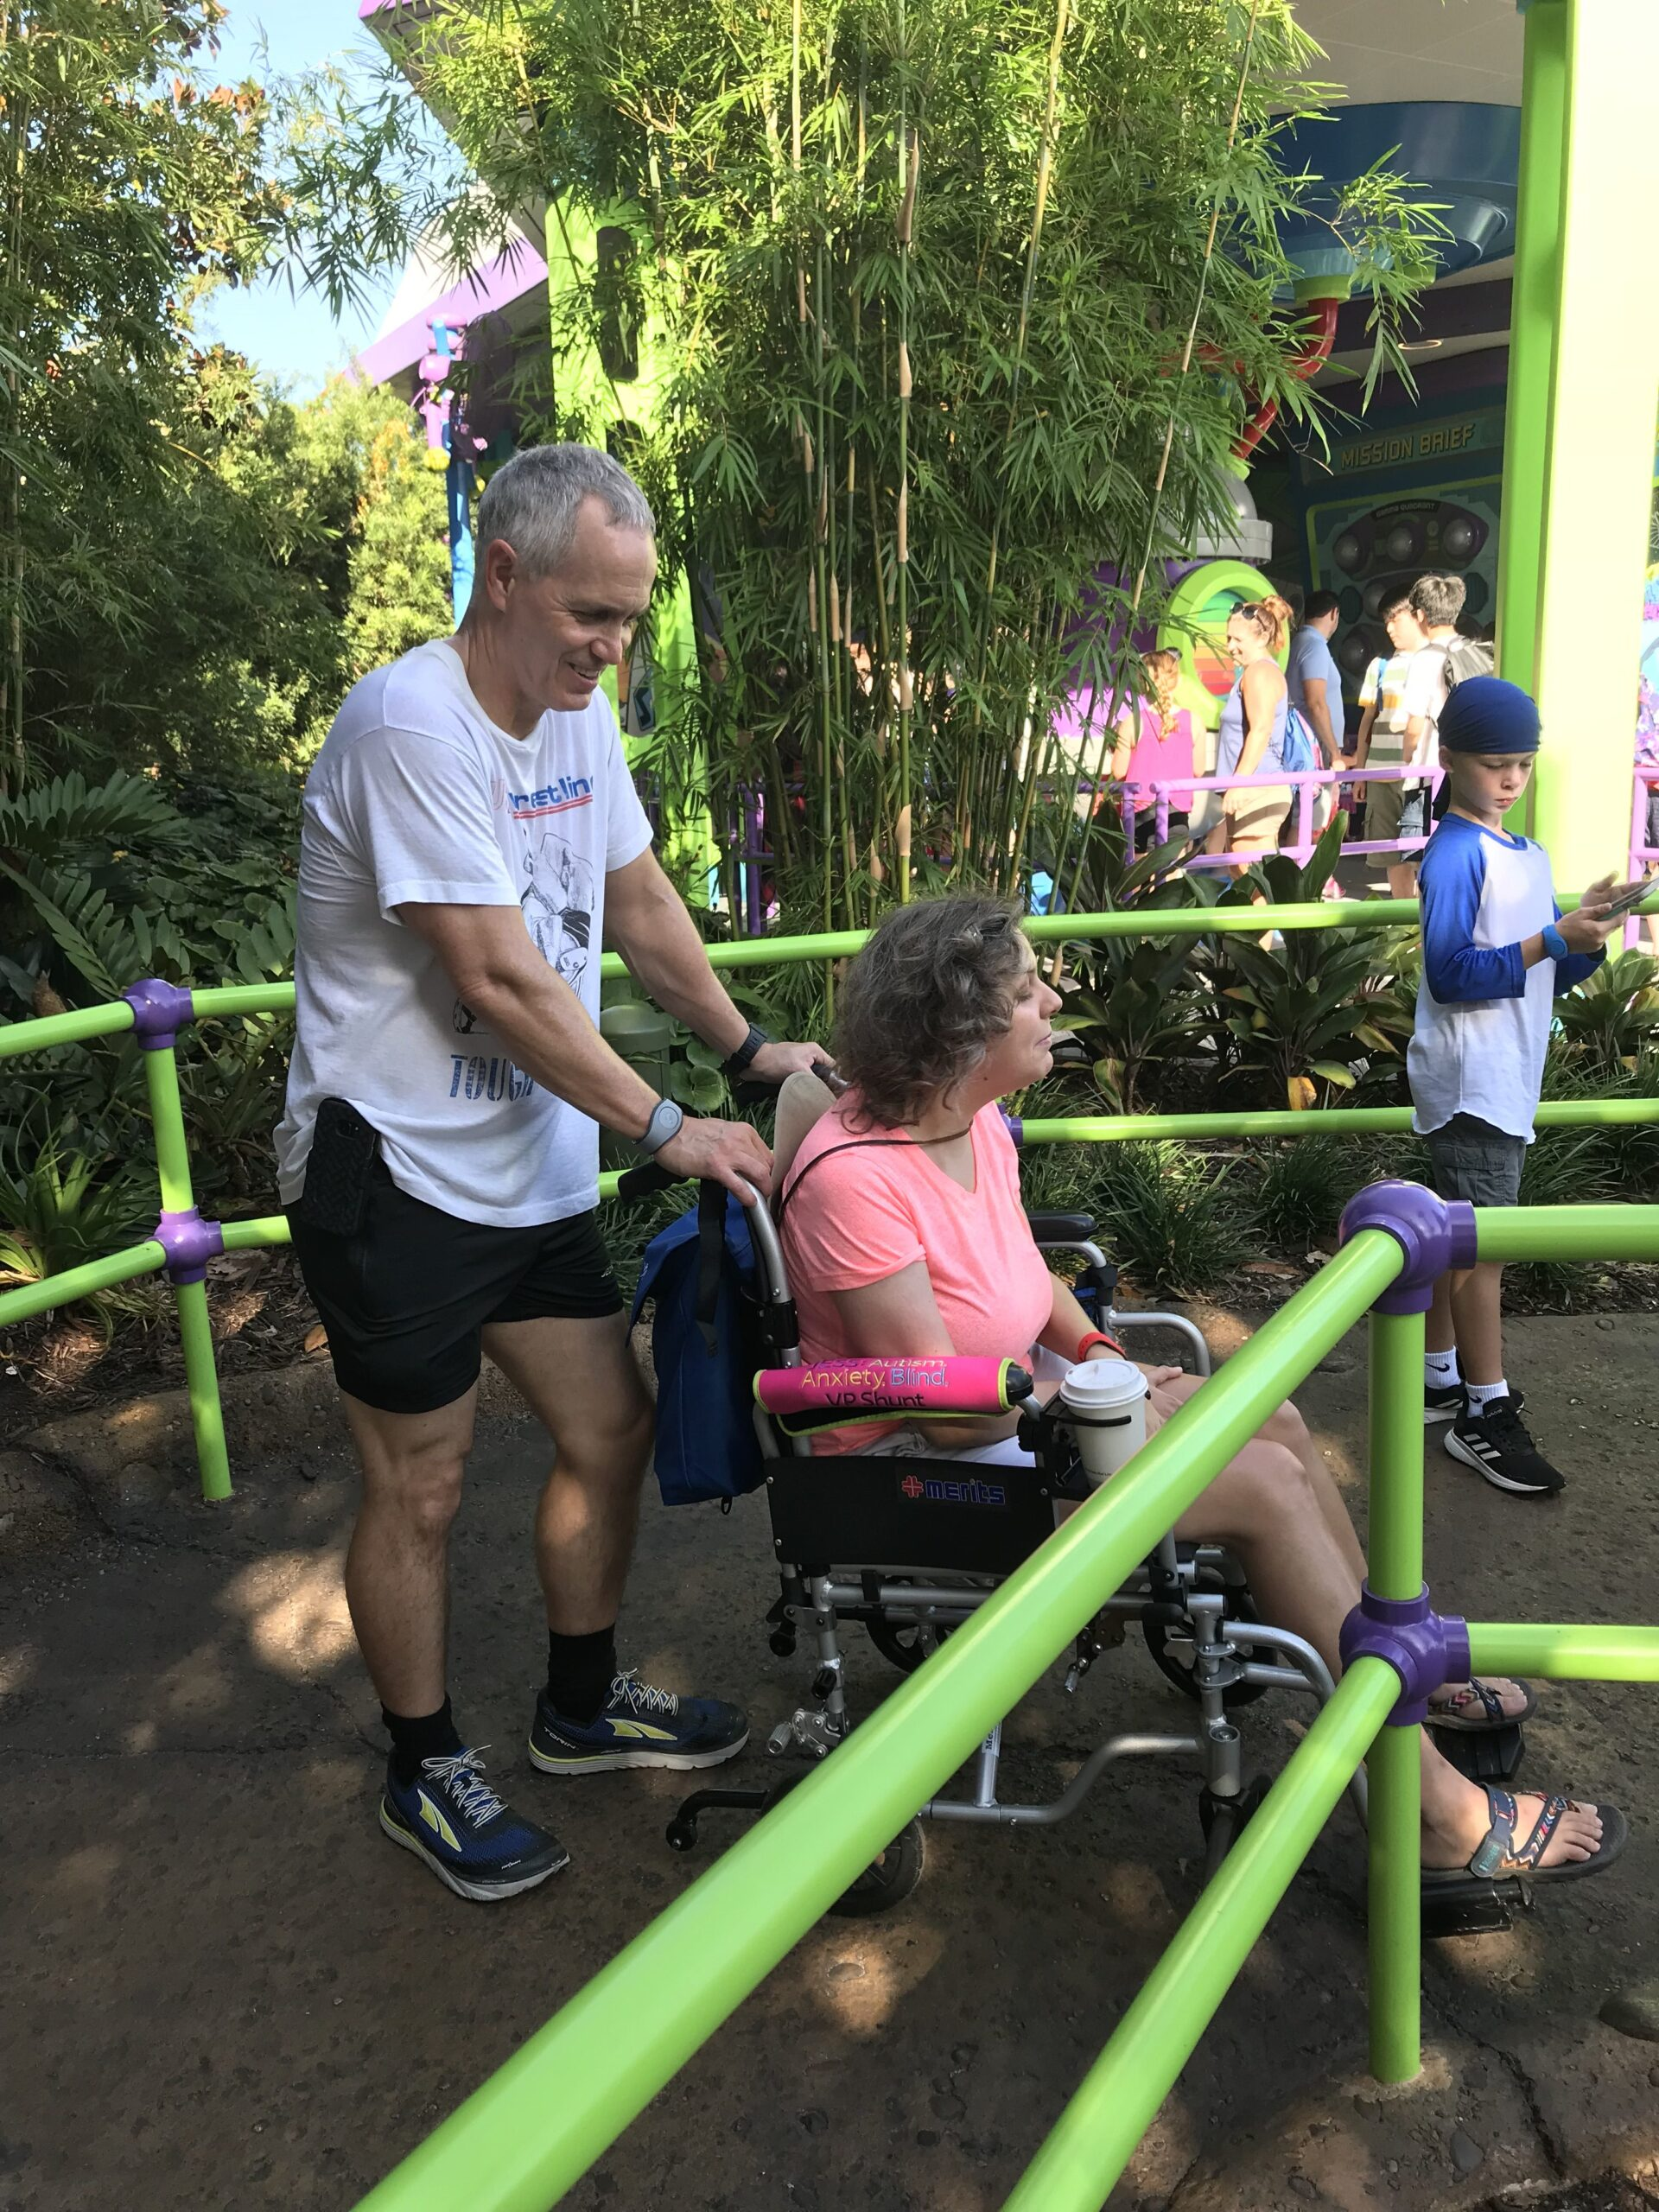 Jess is being pushed in a wheelchair at Disney World